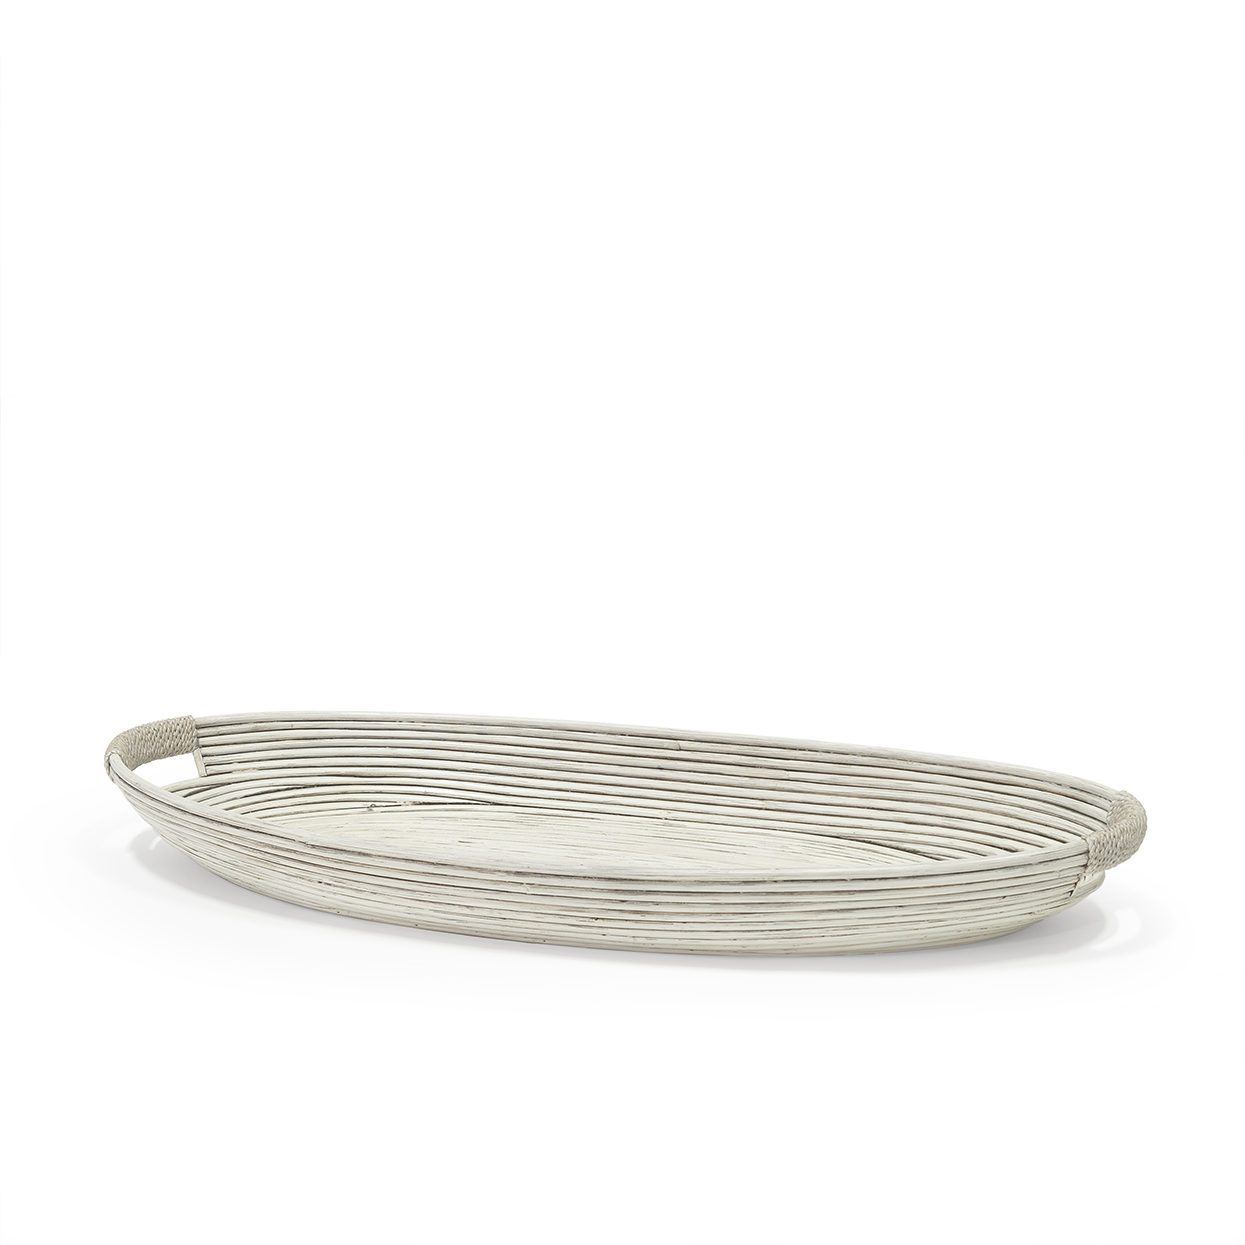 Oval White Washed Pencil Pole Rattan Tray Large   32x14x3.5h  P308903